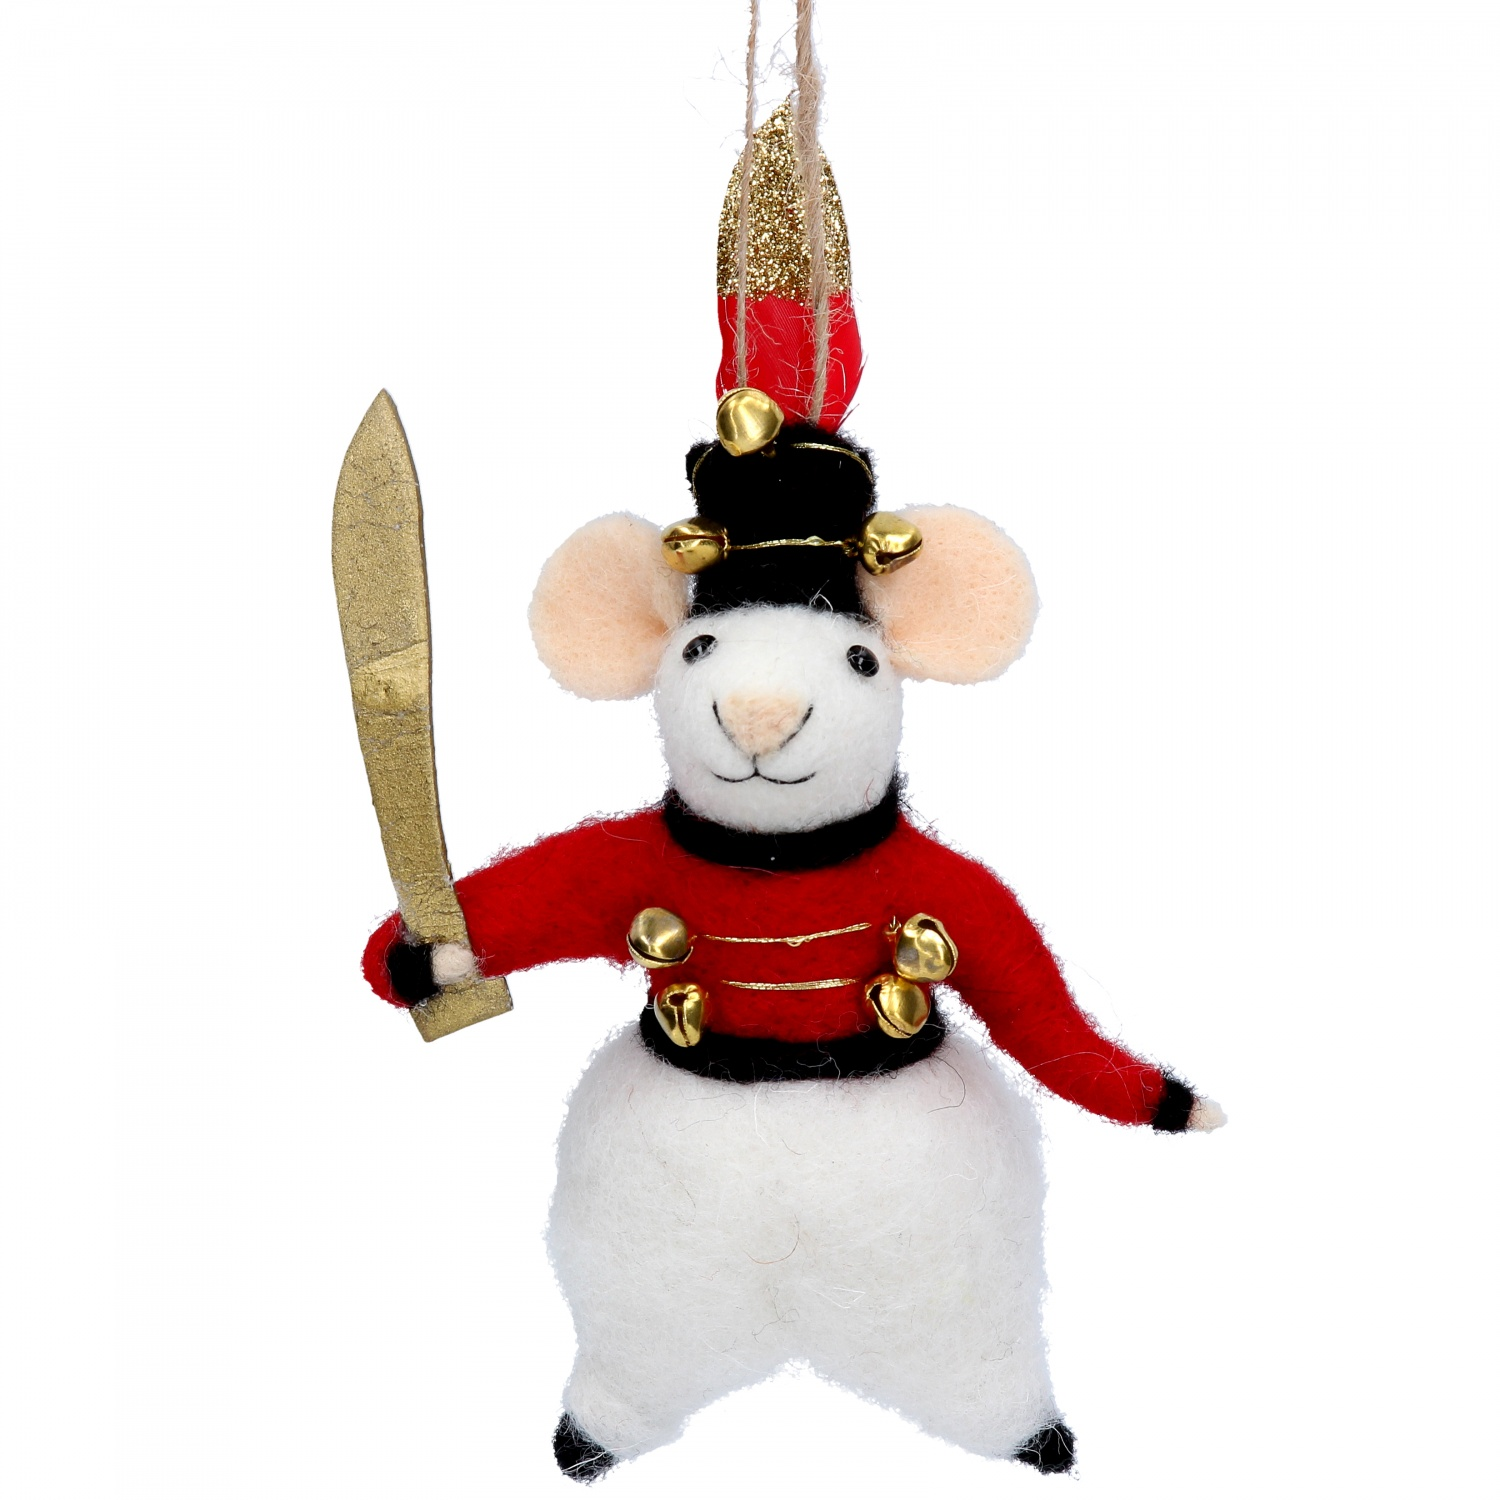 16516-GISELA-GRAHAM-MOUSE-SOLDIER-DEC